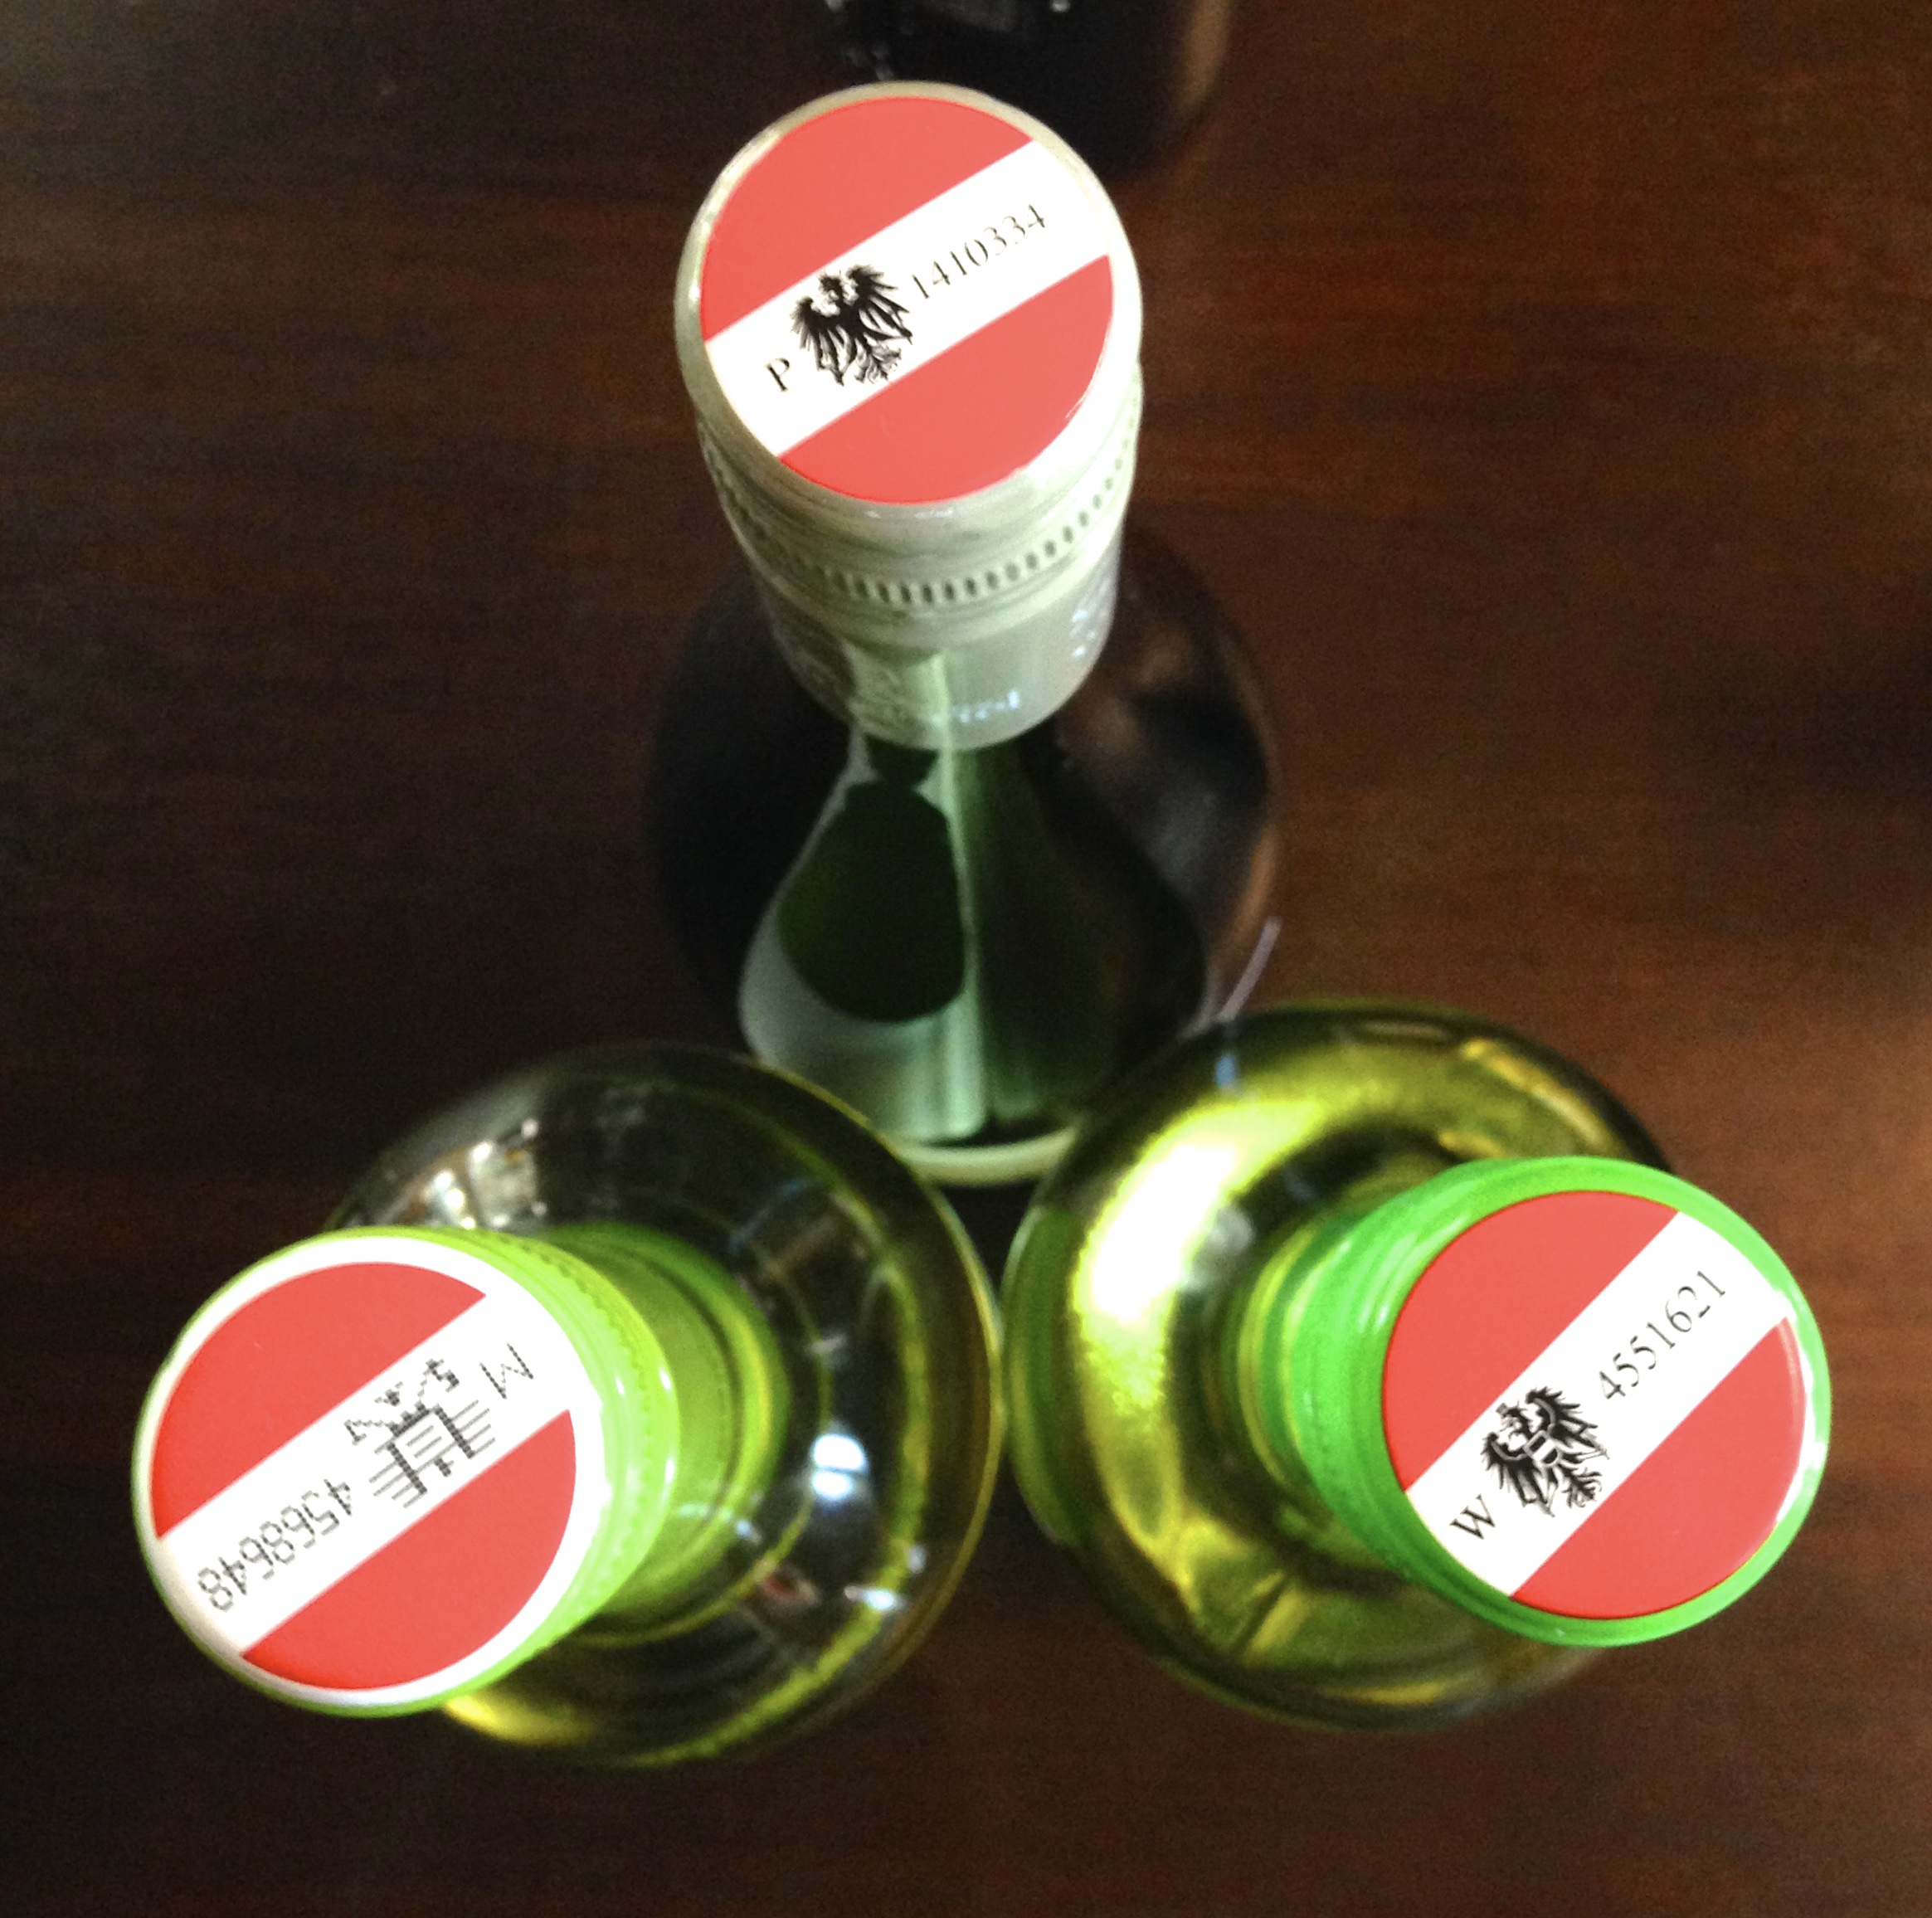 Austria makes it easy to find it's wine in a rack with distinctive patriotic flair